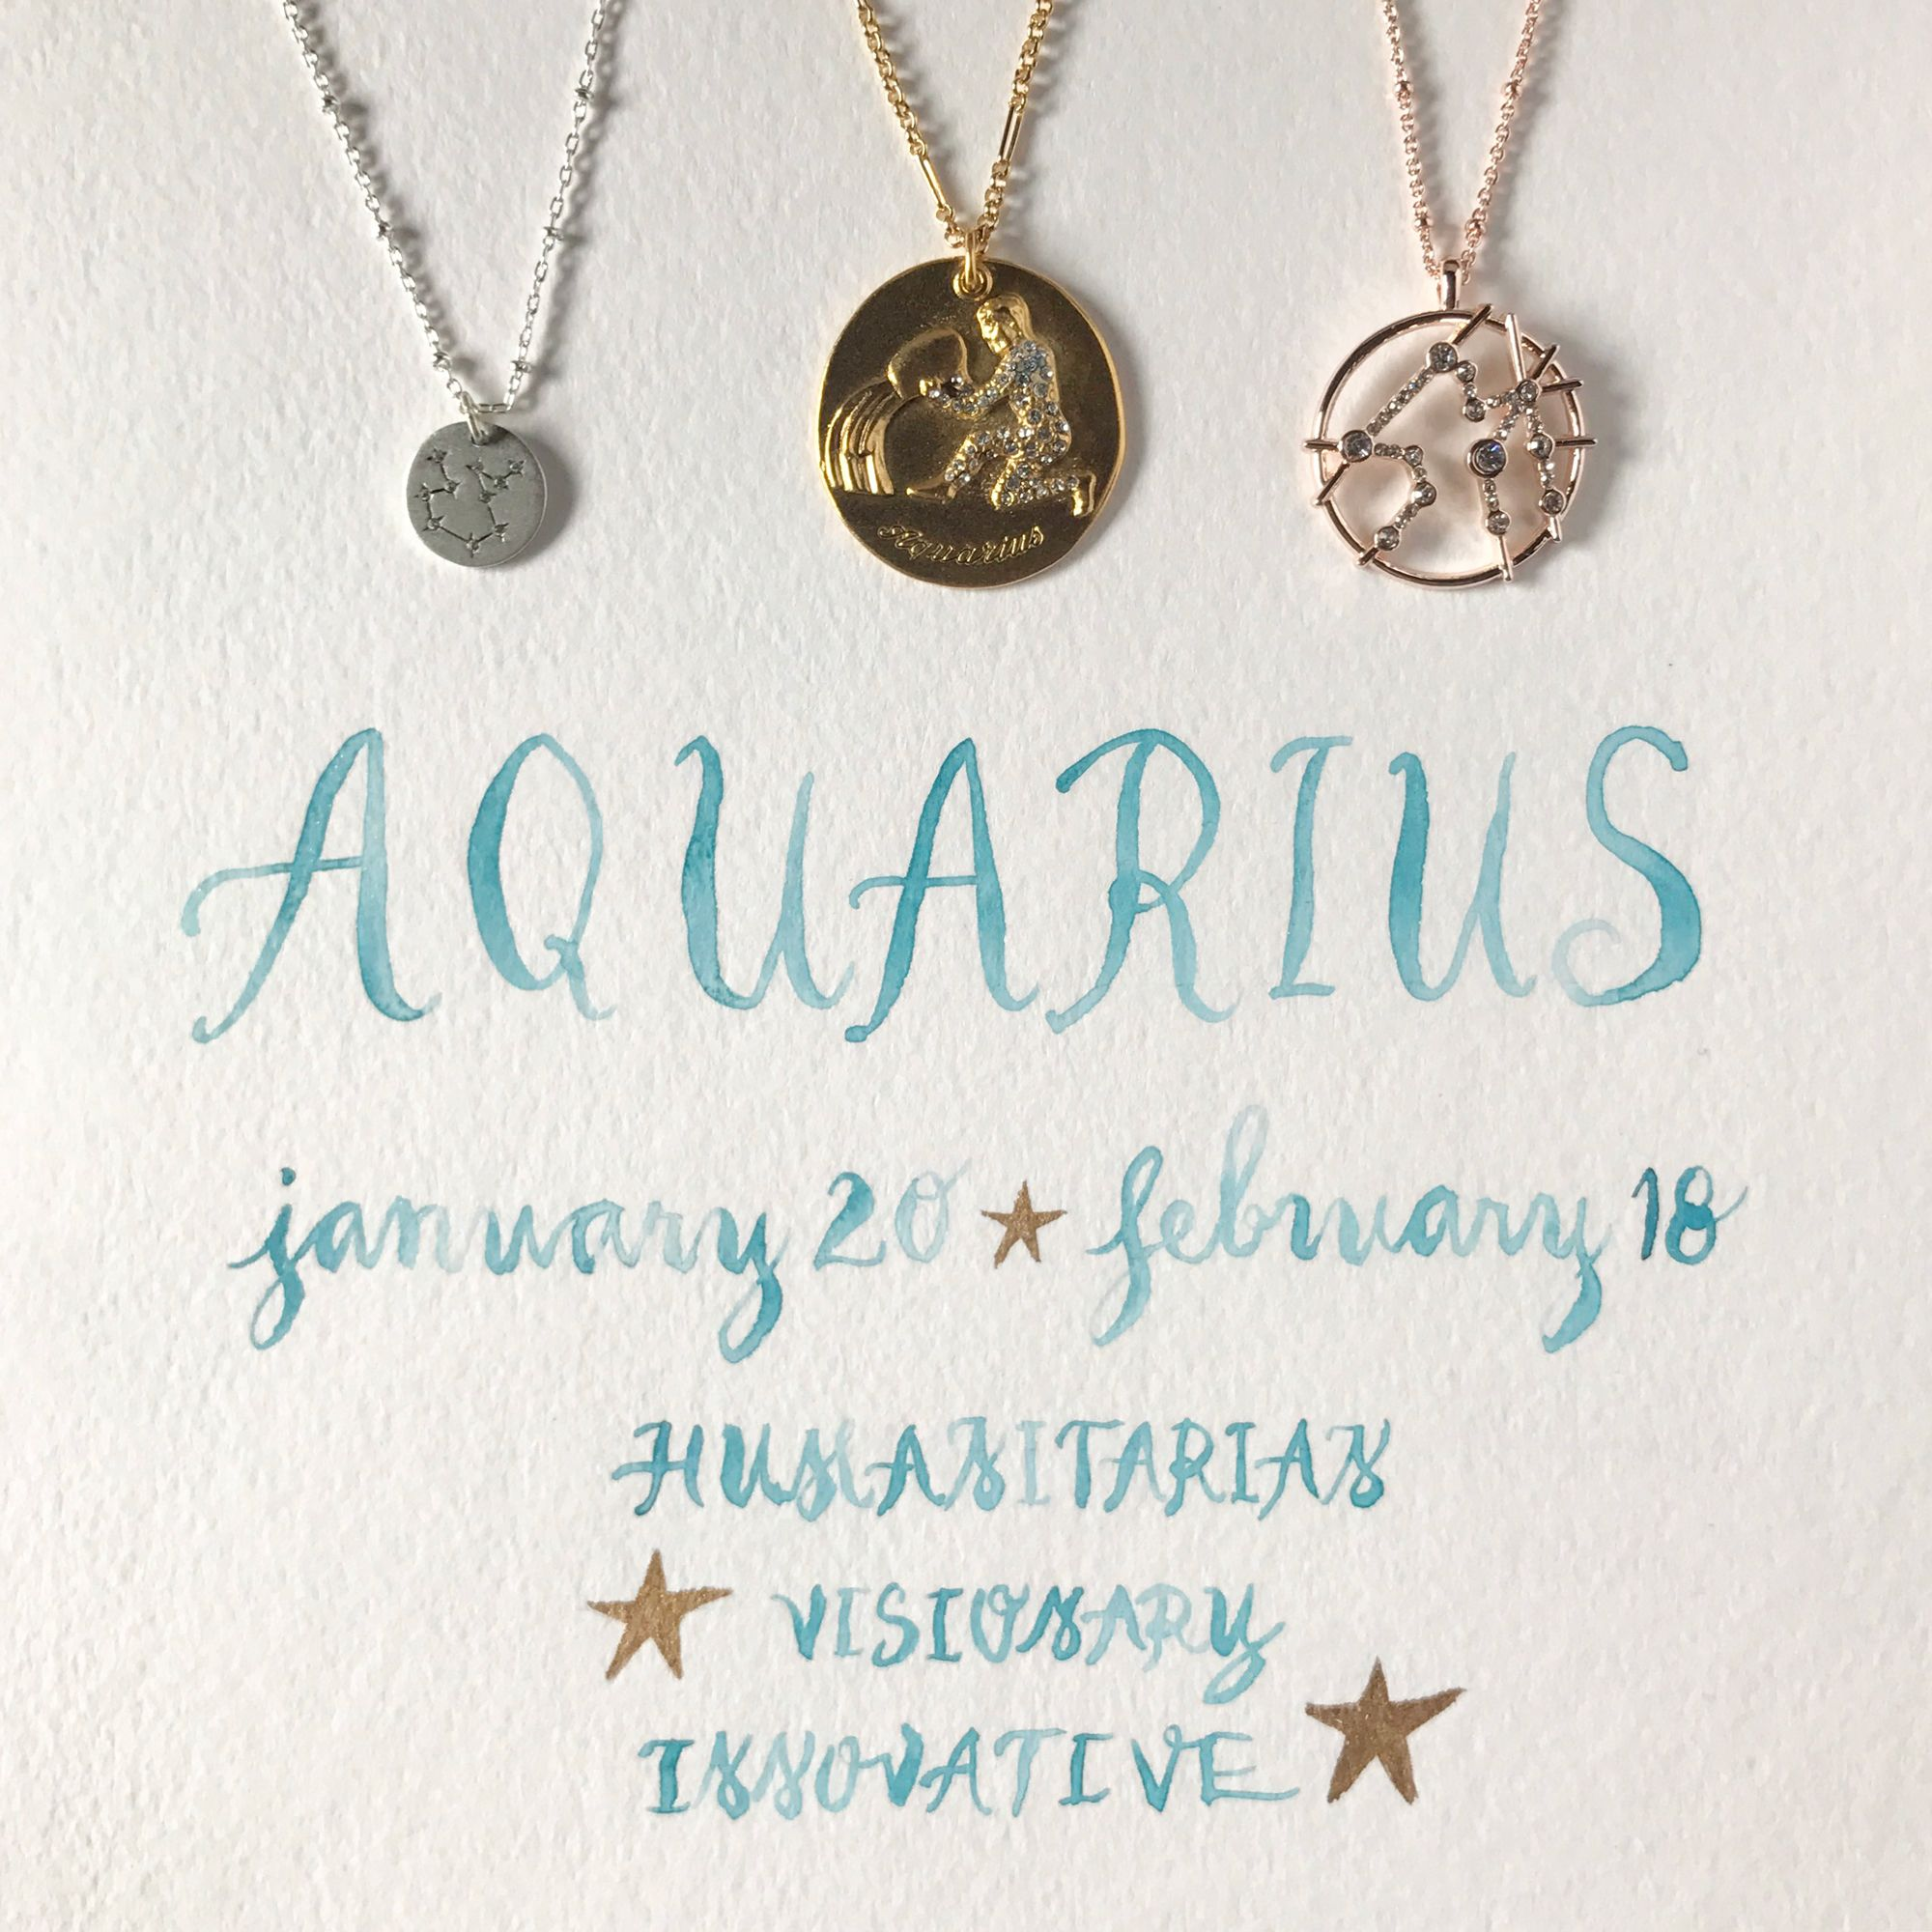 Happy Birthday Aquarius January 20